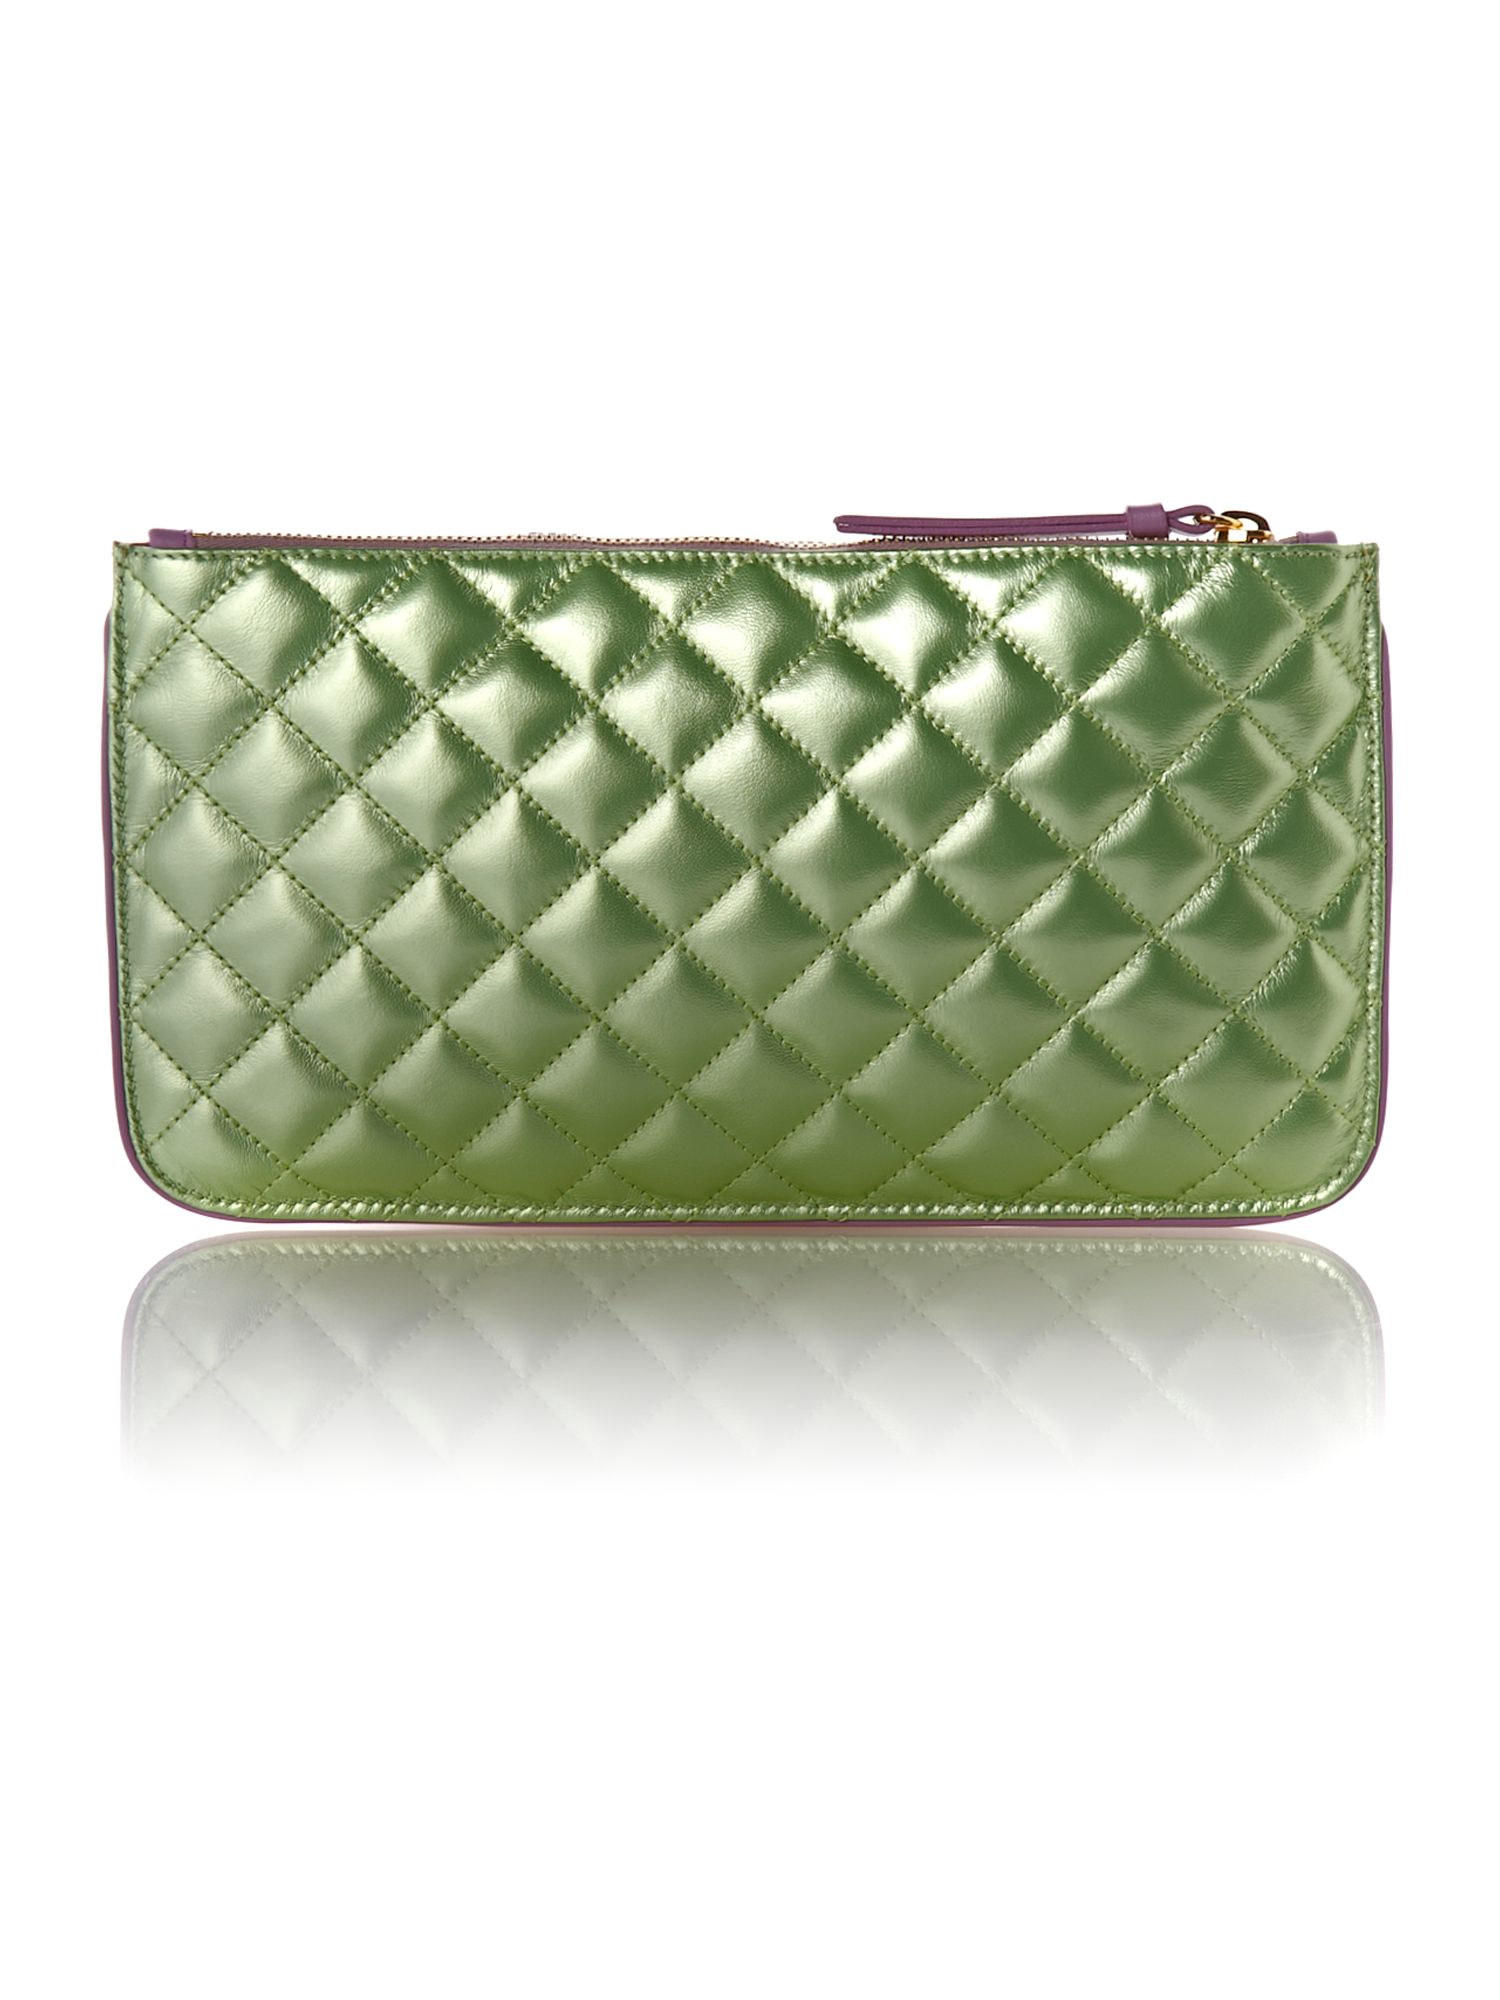 Sweet lux metallic quilted shoulder bag